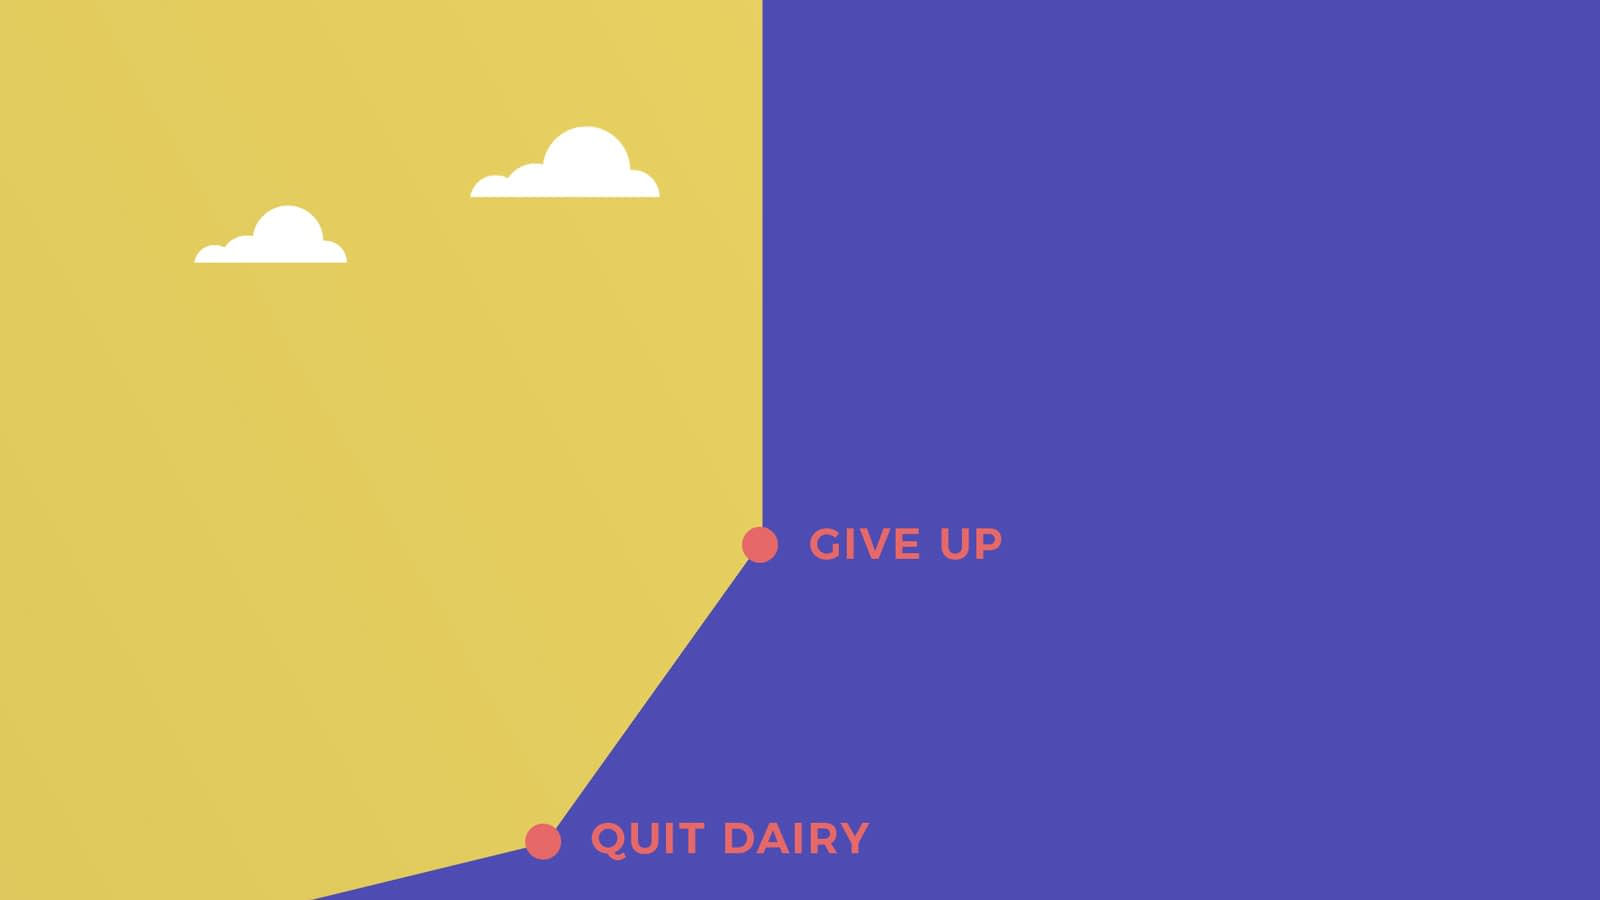 Trying to give up dairy, but failing, during a transition to a vegan diet.